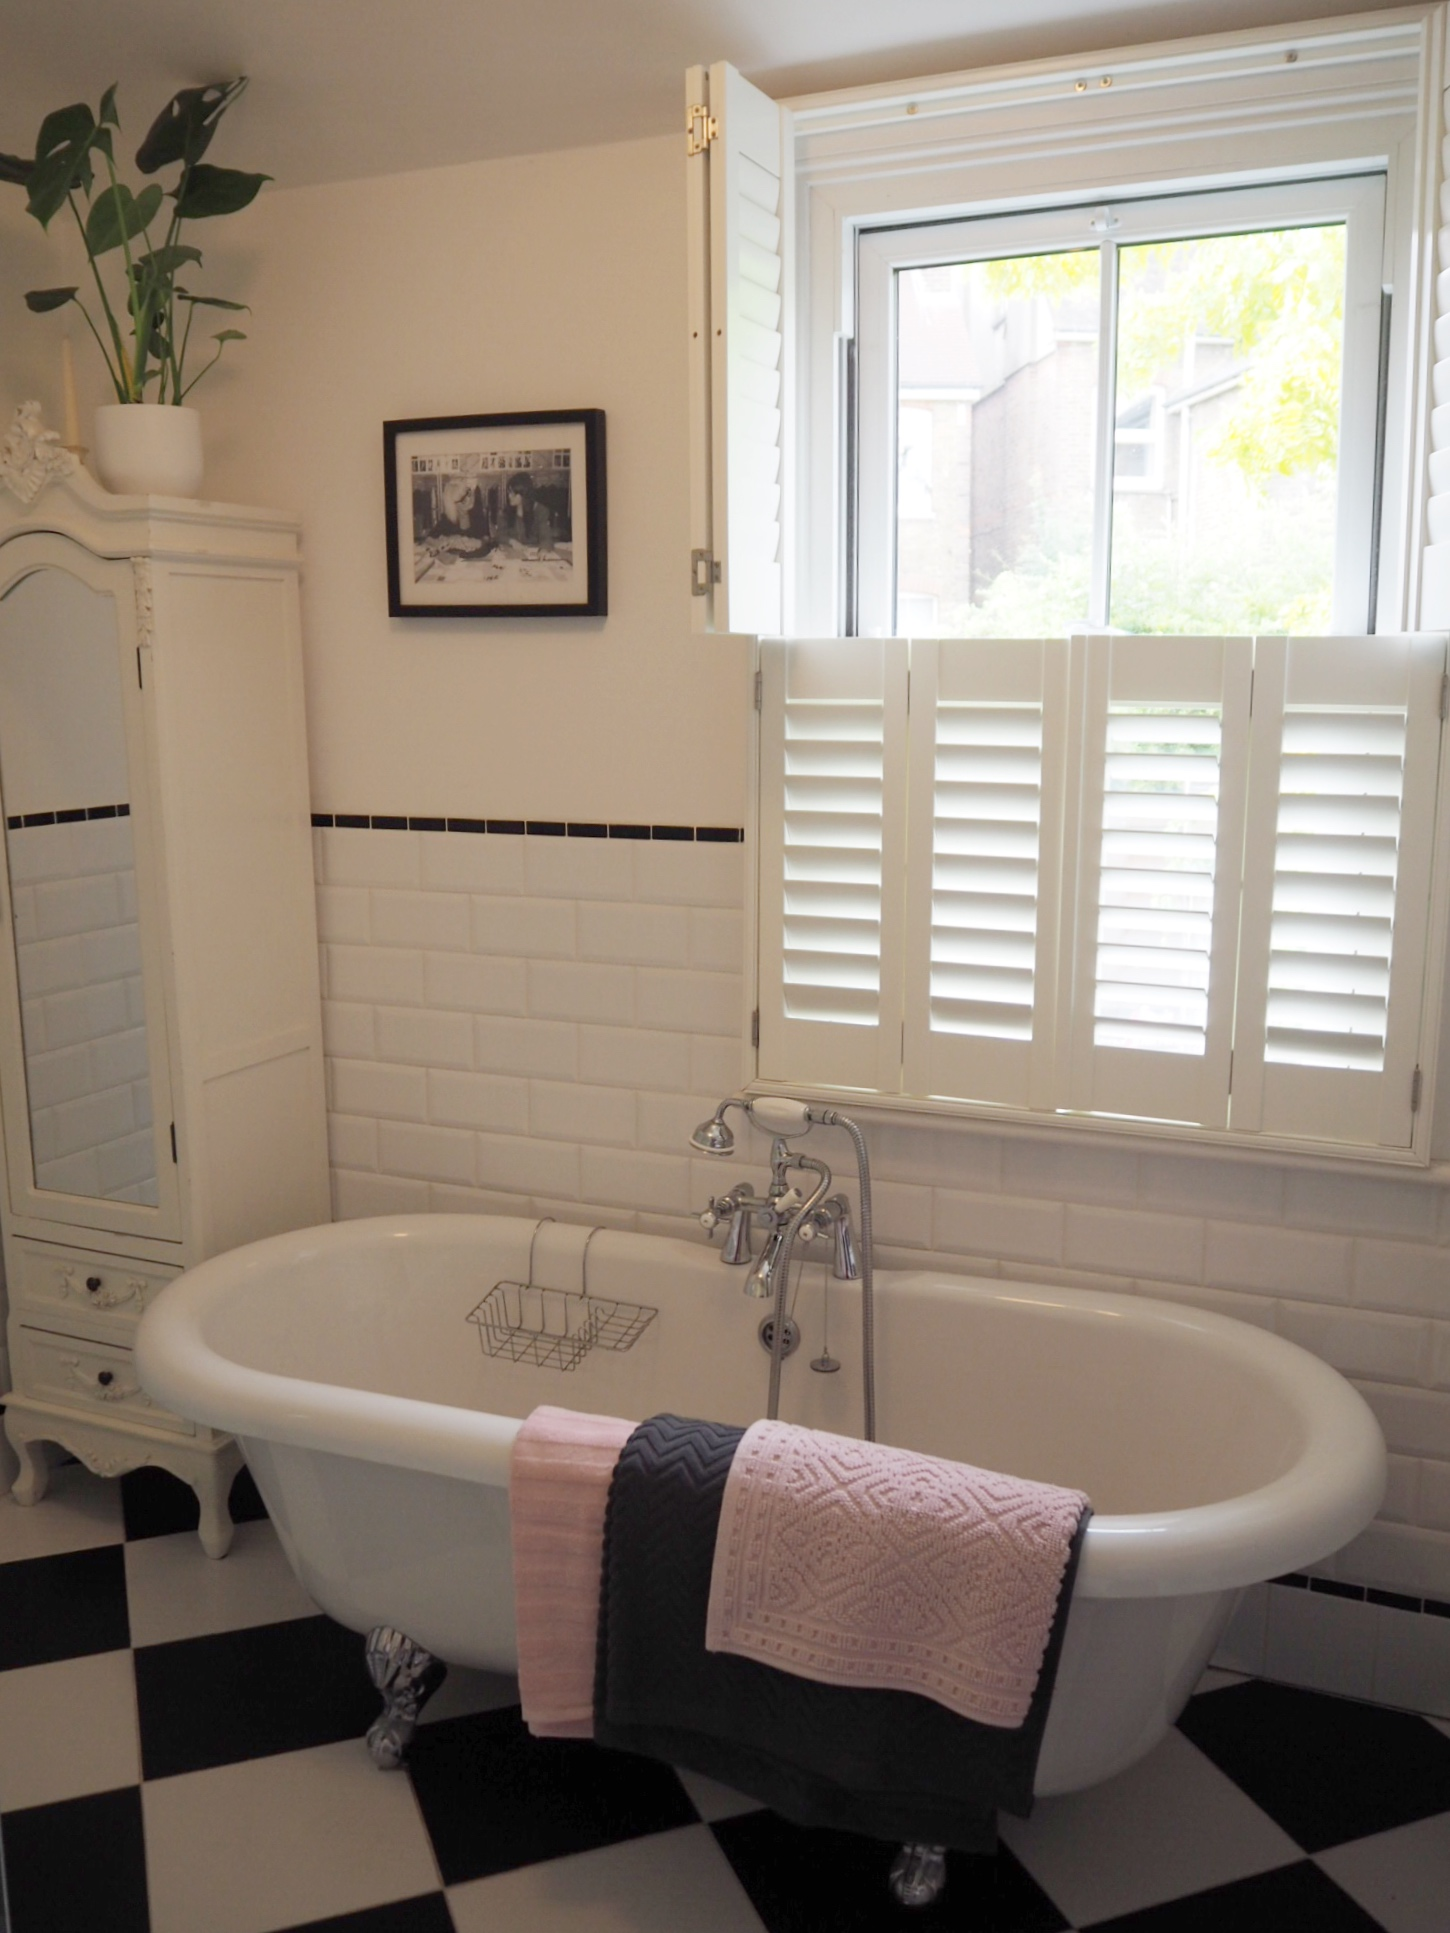 Black and white bathroom with house plants, cactus and blush and grey H&M  pink towels.